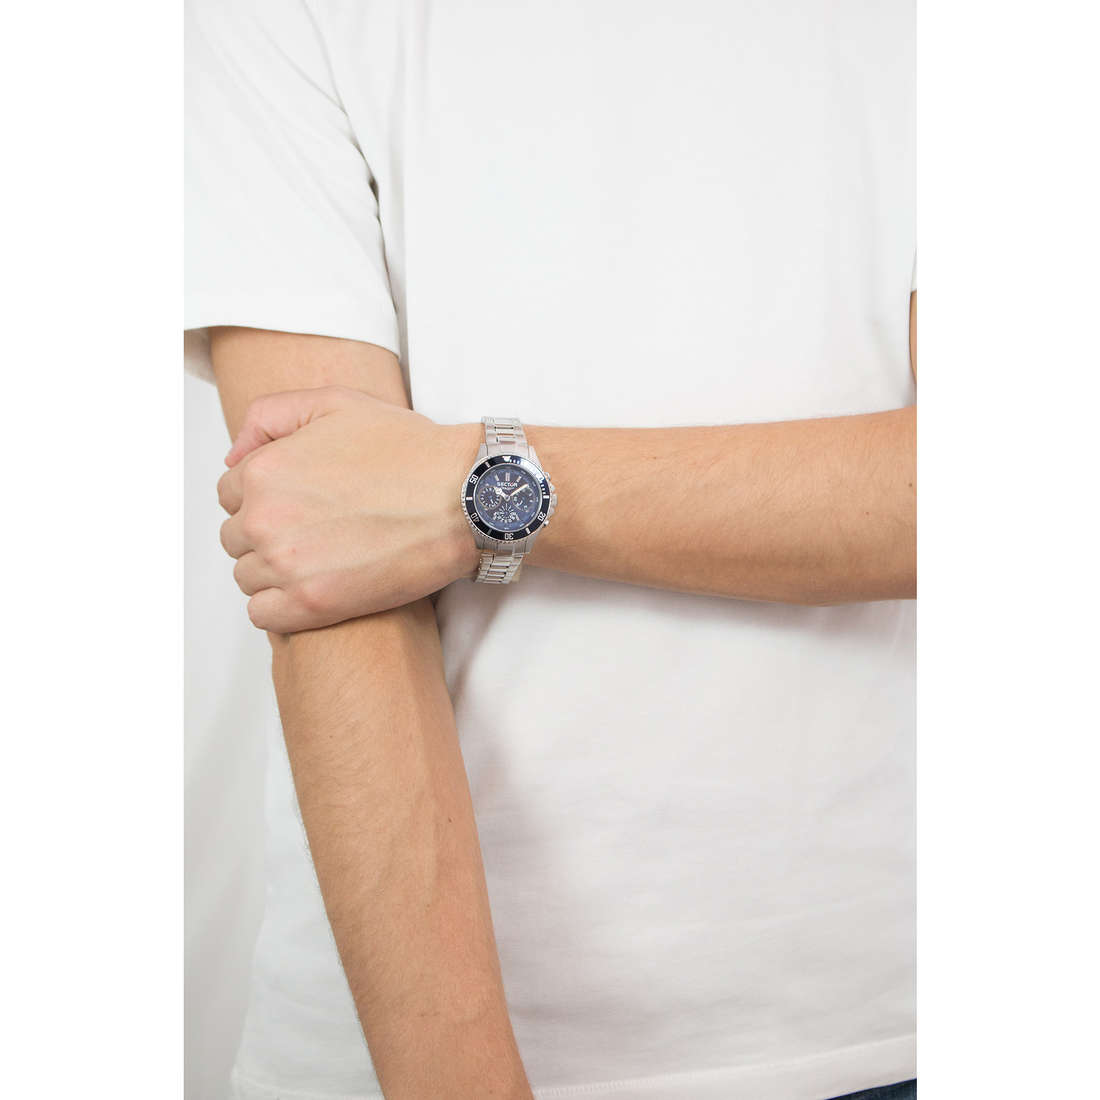 Sector multifunction 230 man R3253161009 photo wearing